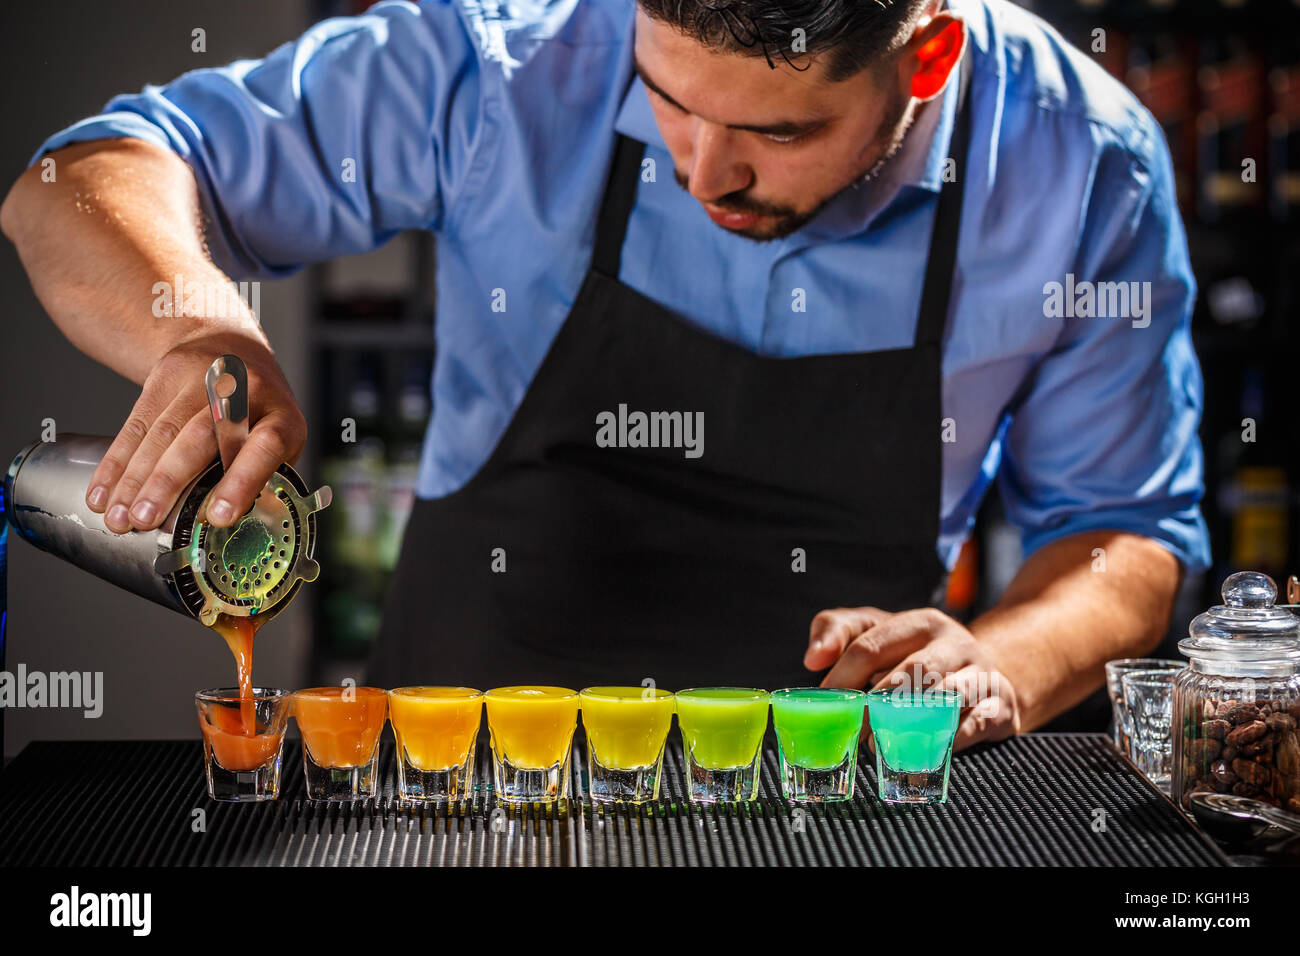 Dozen of colorful rainbow cocktails being prepared on the counter by a bartender - Stock Image